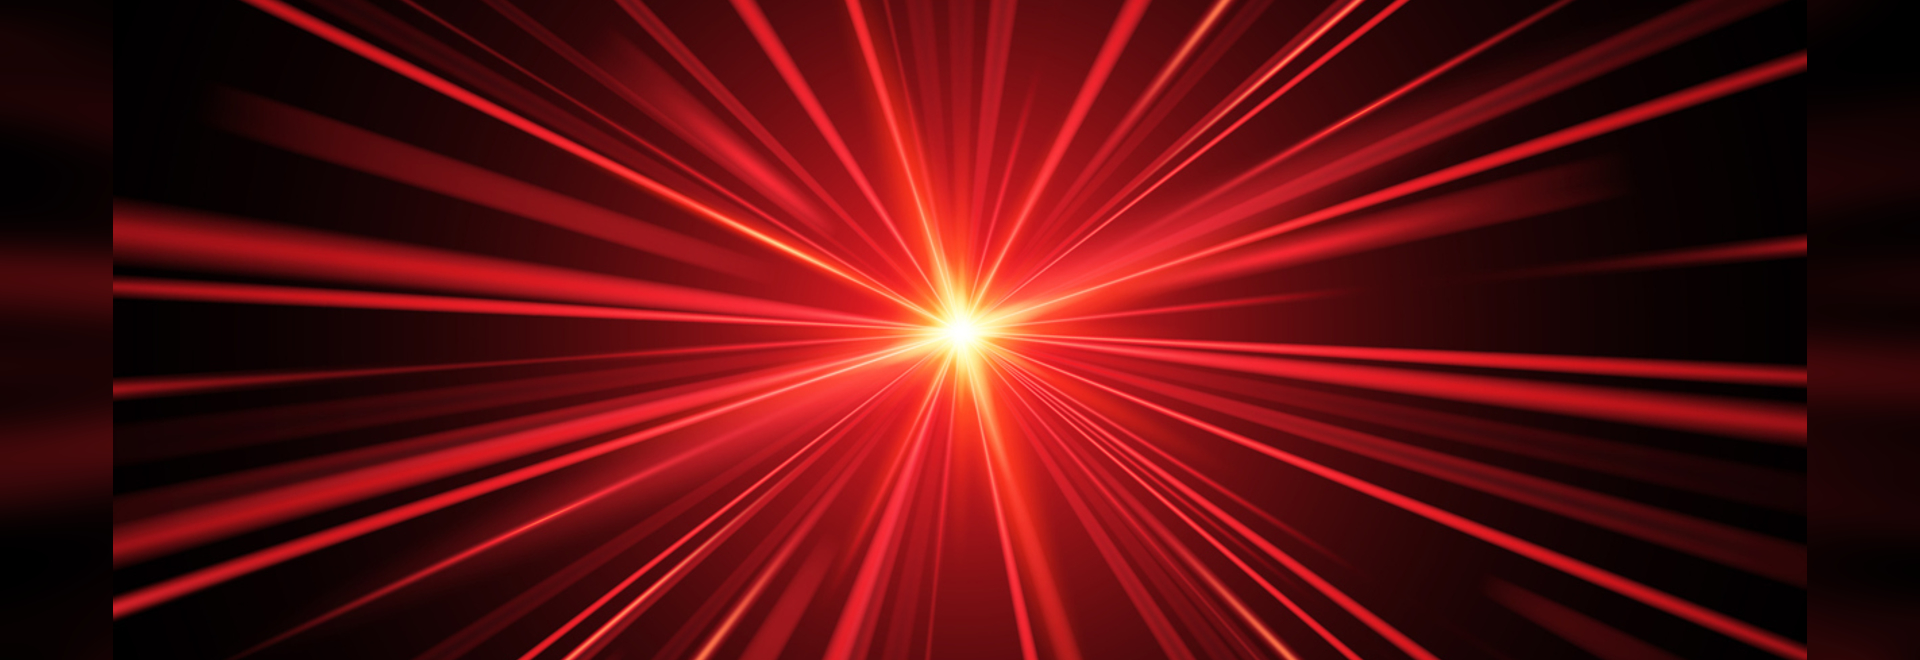 Without lasers, we would have no internet, no computers and no gene sequencing, to name but a few major applications